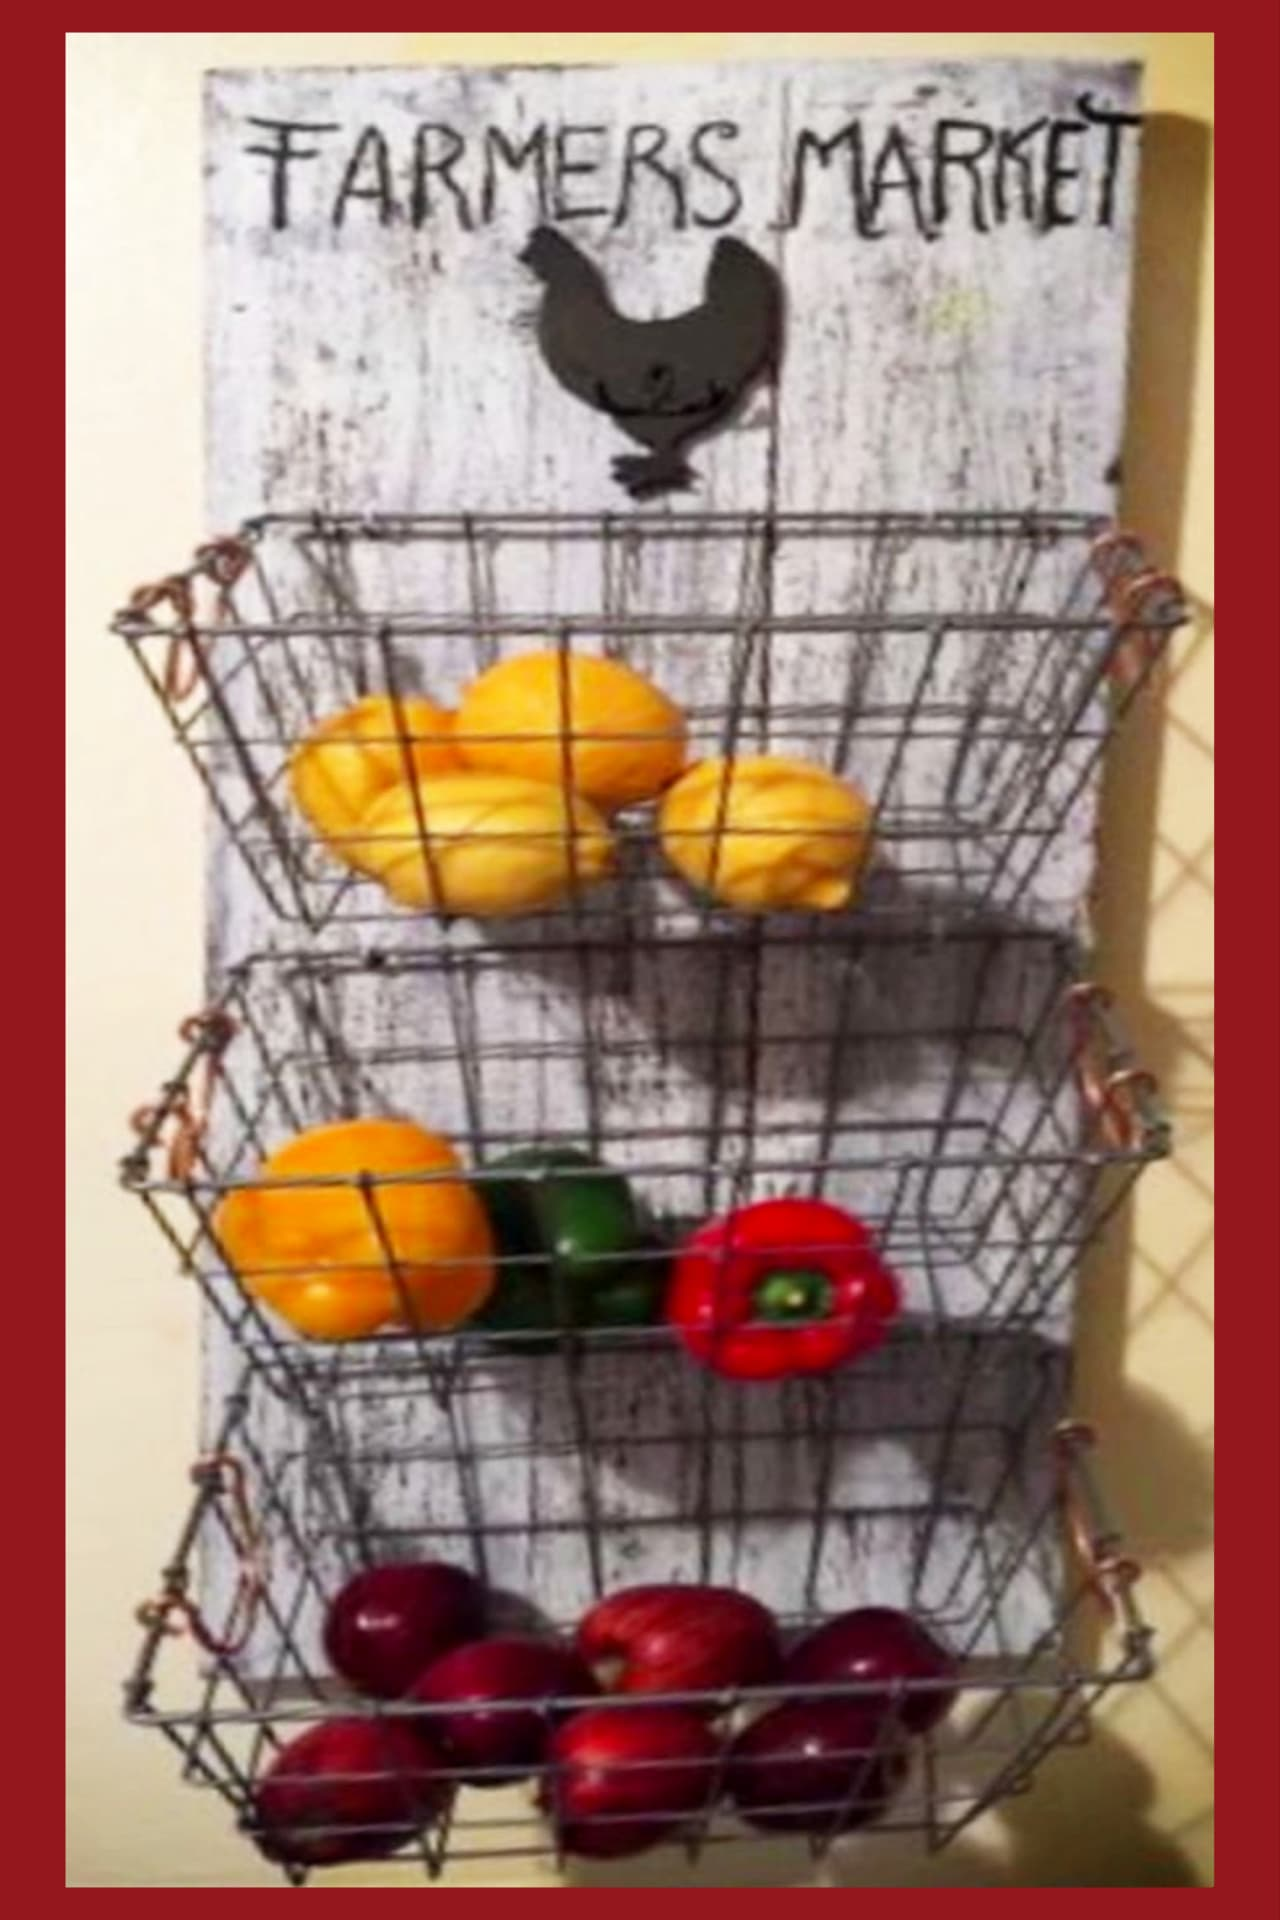 Pallet projects for your kitchen (to make or to sell) - easy DIY farmhouse kitchen hanging wall basket made from old pallet wood